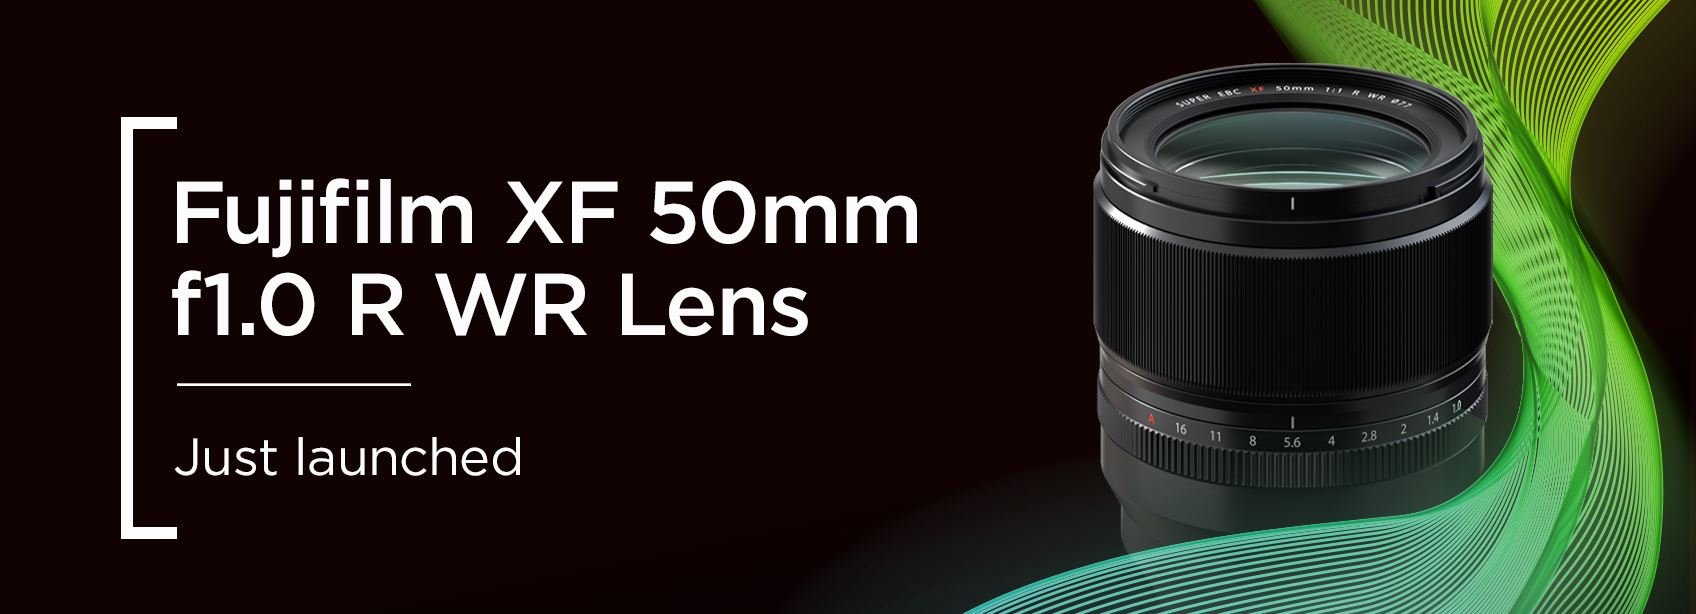 Fujifilm XF 50mm f1.0 R WR Lens - Just launched